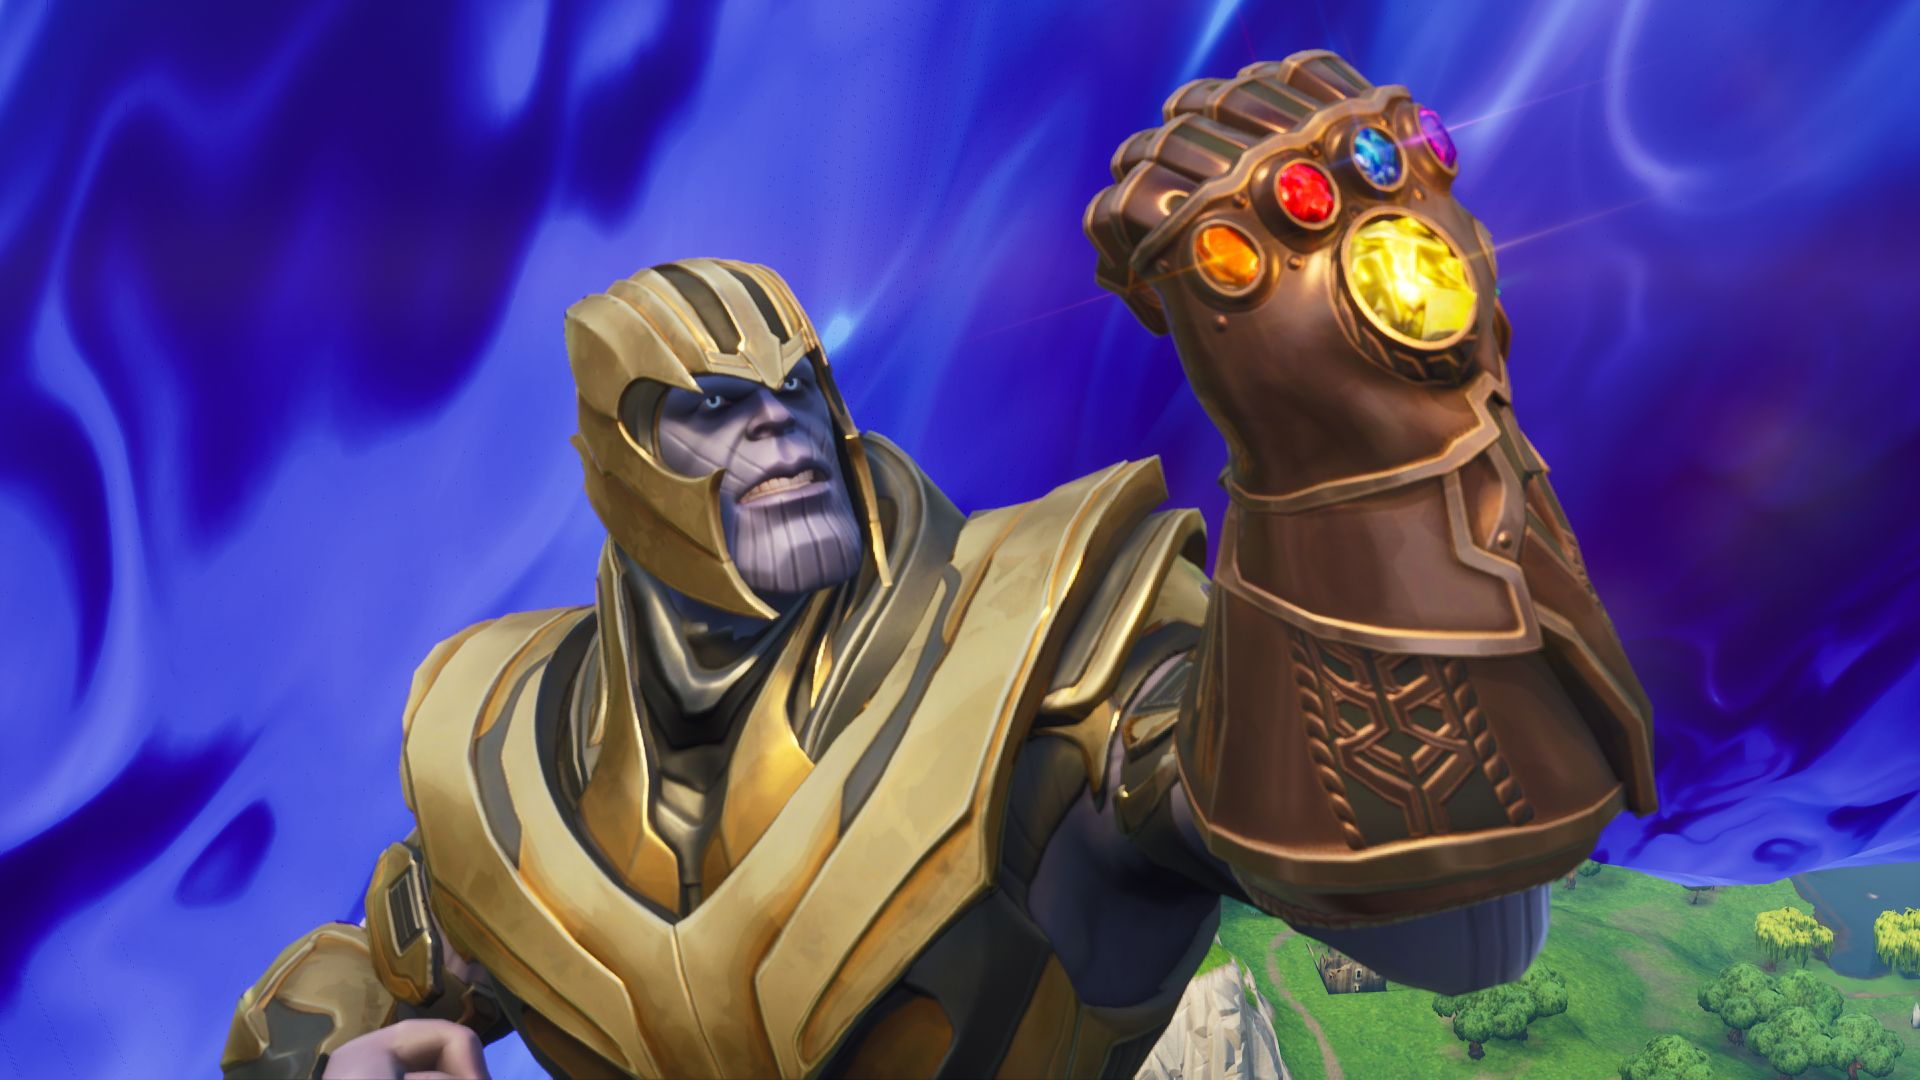 Fortnite and Marvel team up for an Avengers crossover event